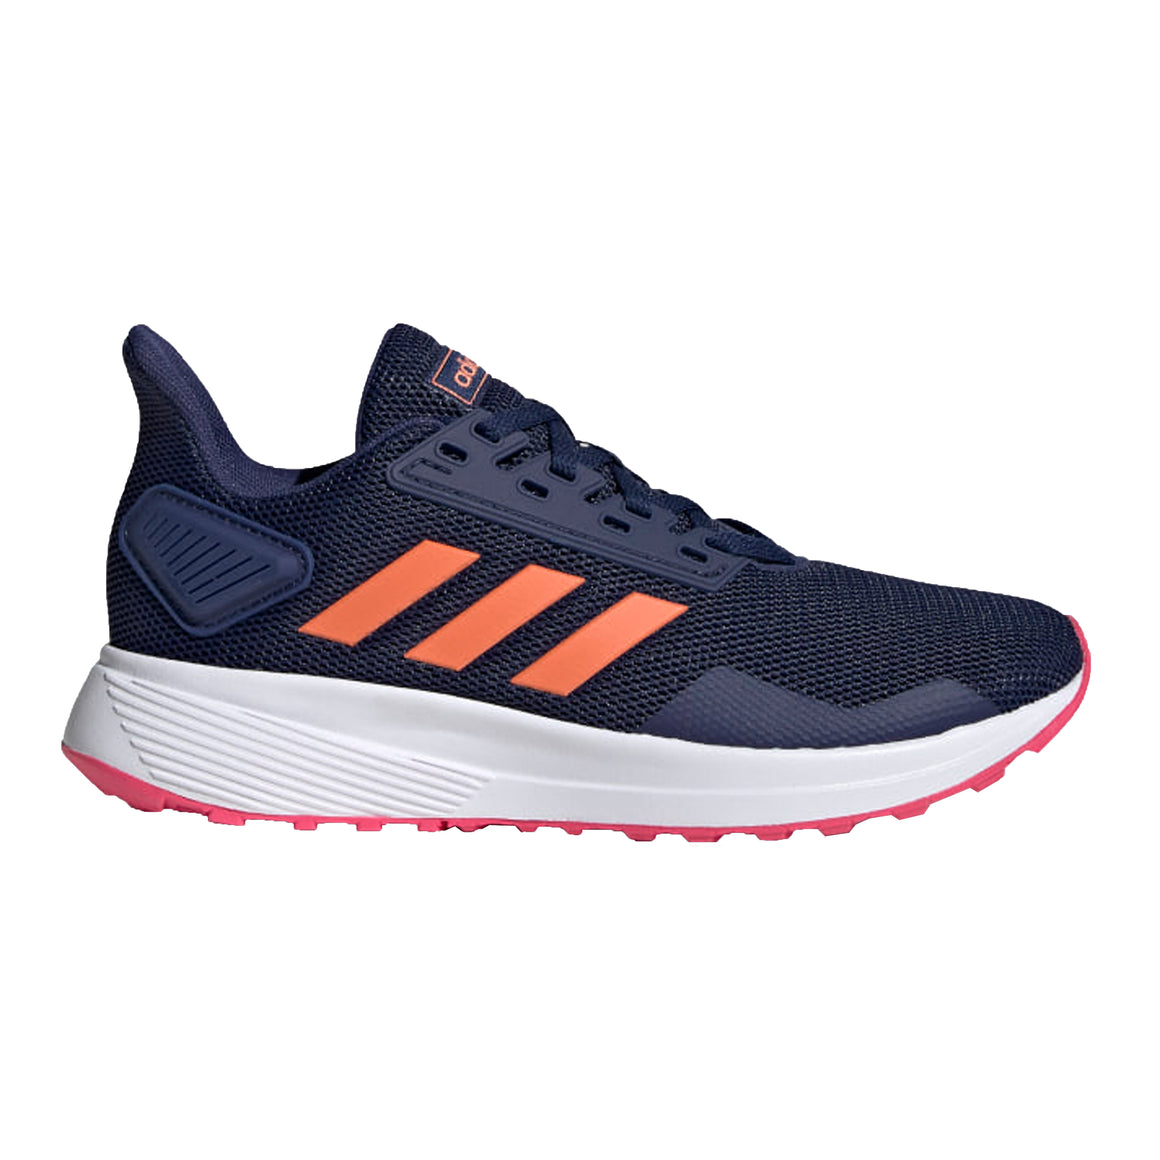 Duramo 9 Jnr Trainers for Kids in Navy & Pink